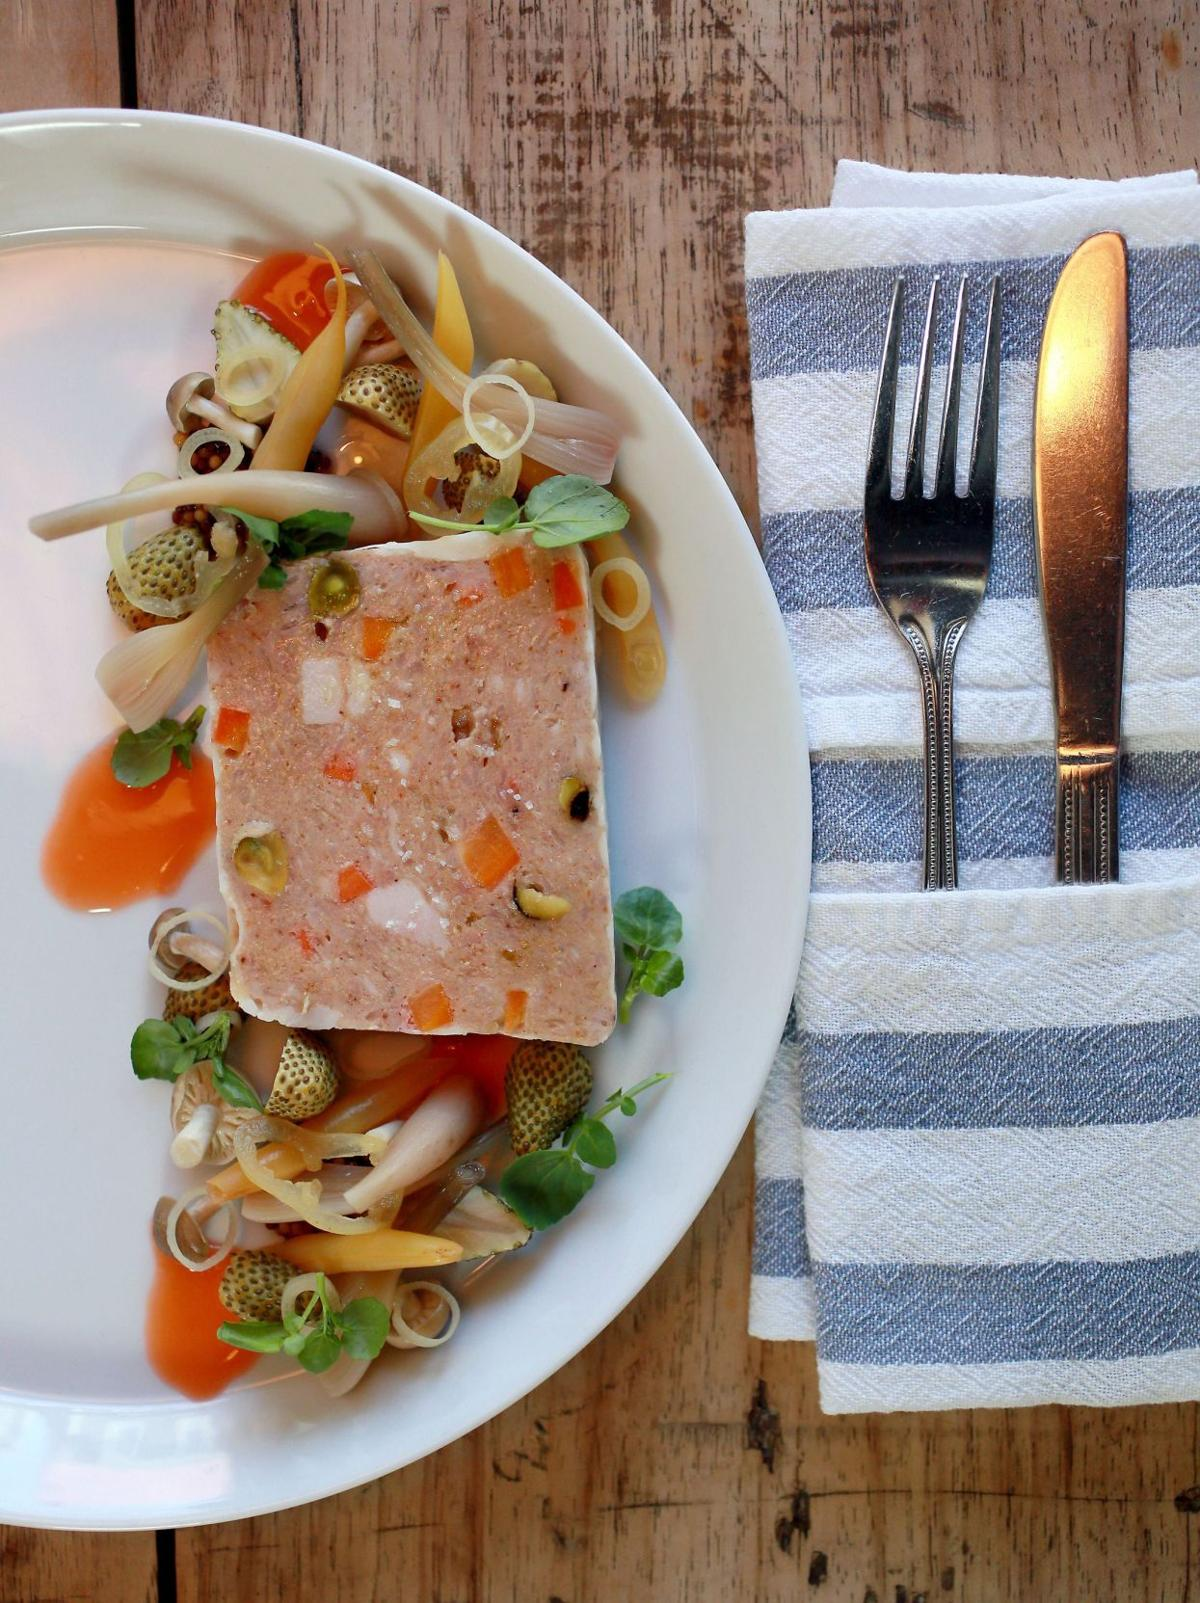 Rabbit terrine incorporates chicken, pork fat and a variety of spices